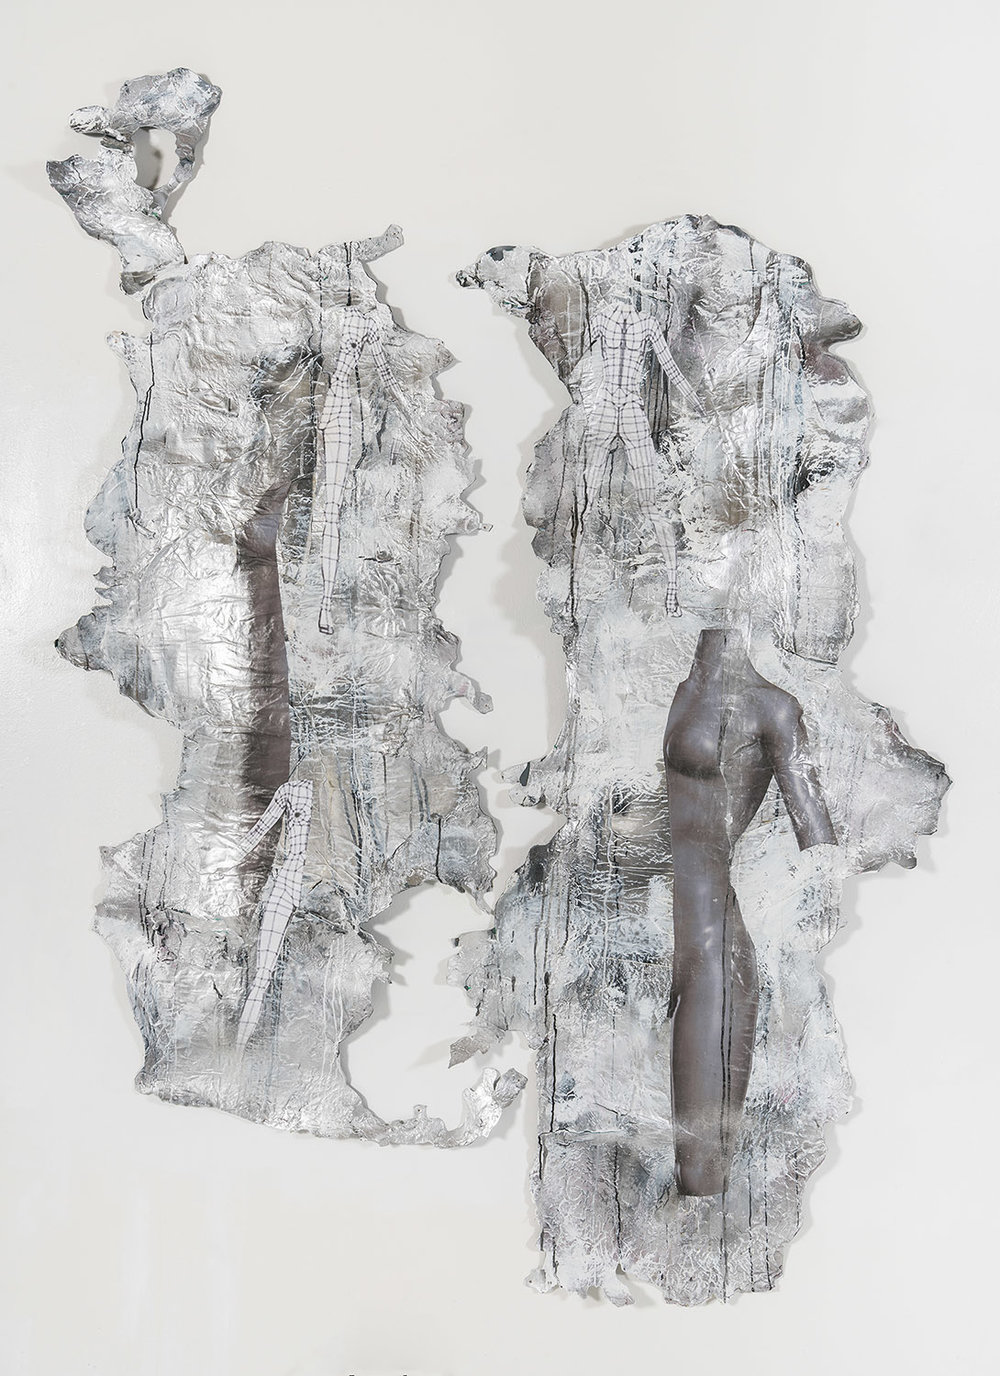 Silver Women , 2016, Mixed media on rubber, 5ft X 6.5ft